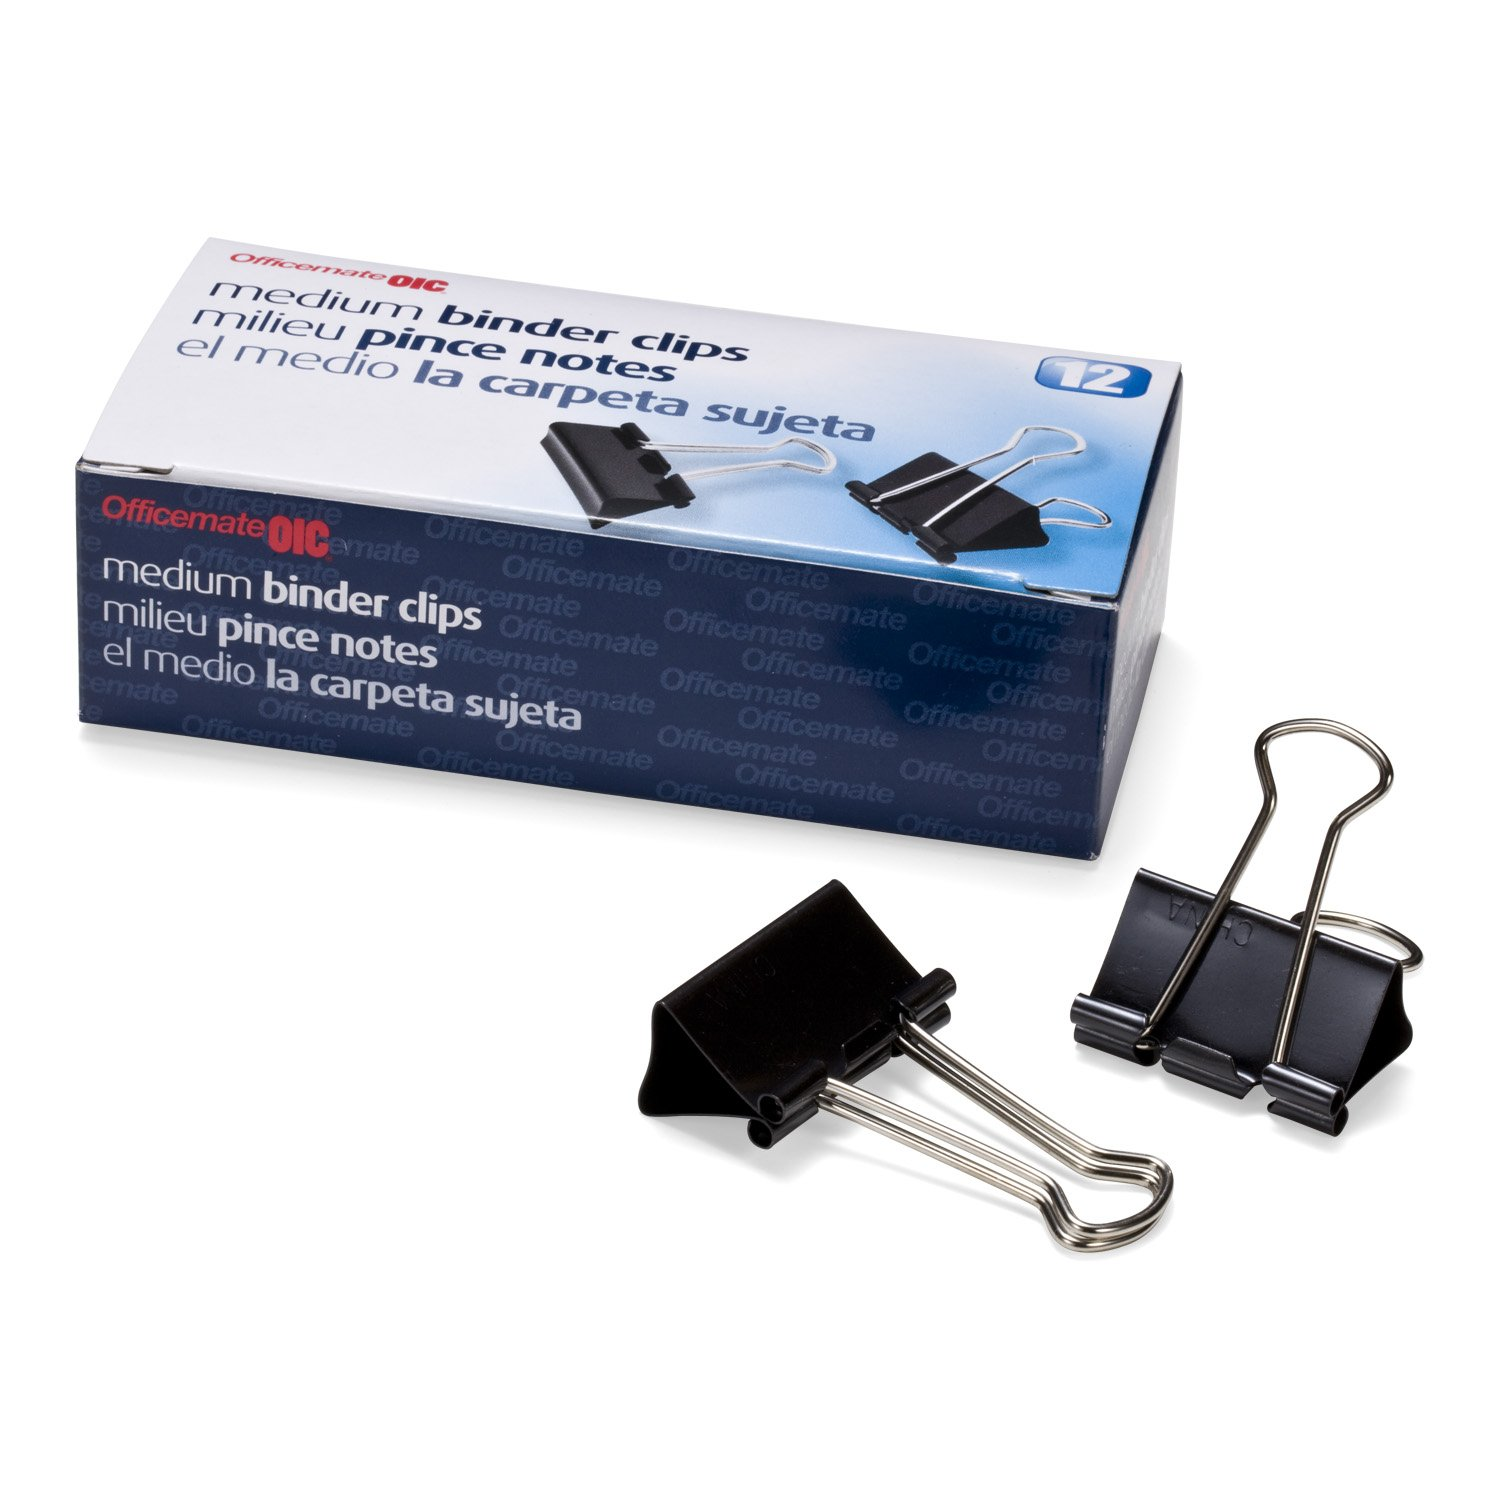 Officemate Medium Binder Clips, Black, 12 Boxes of 1 Dozen Each (144 Total) (99050)